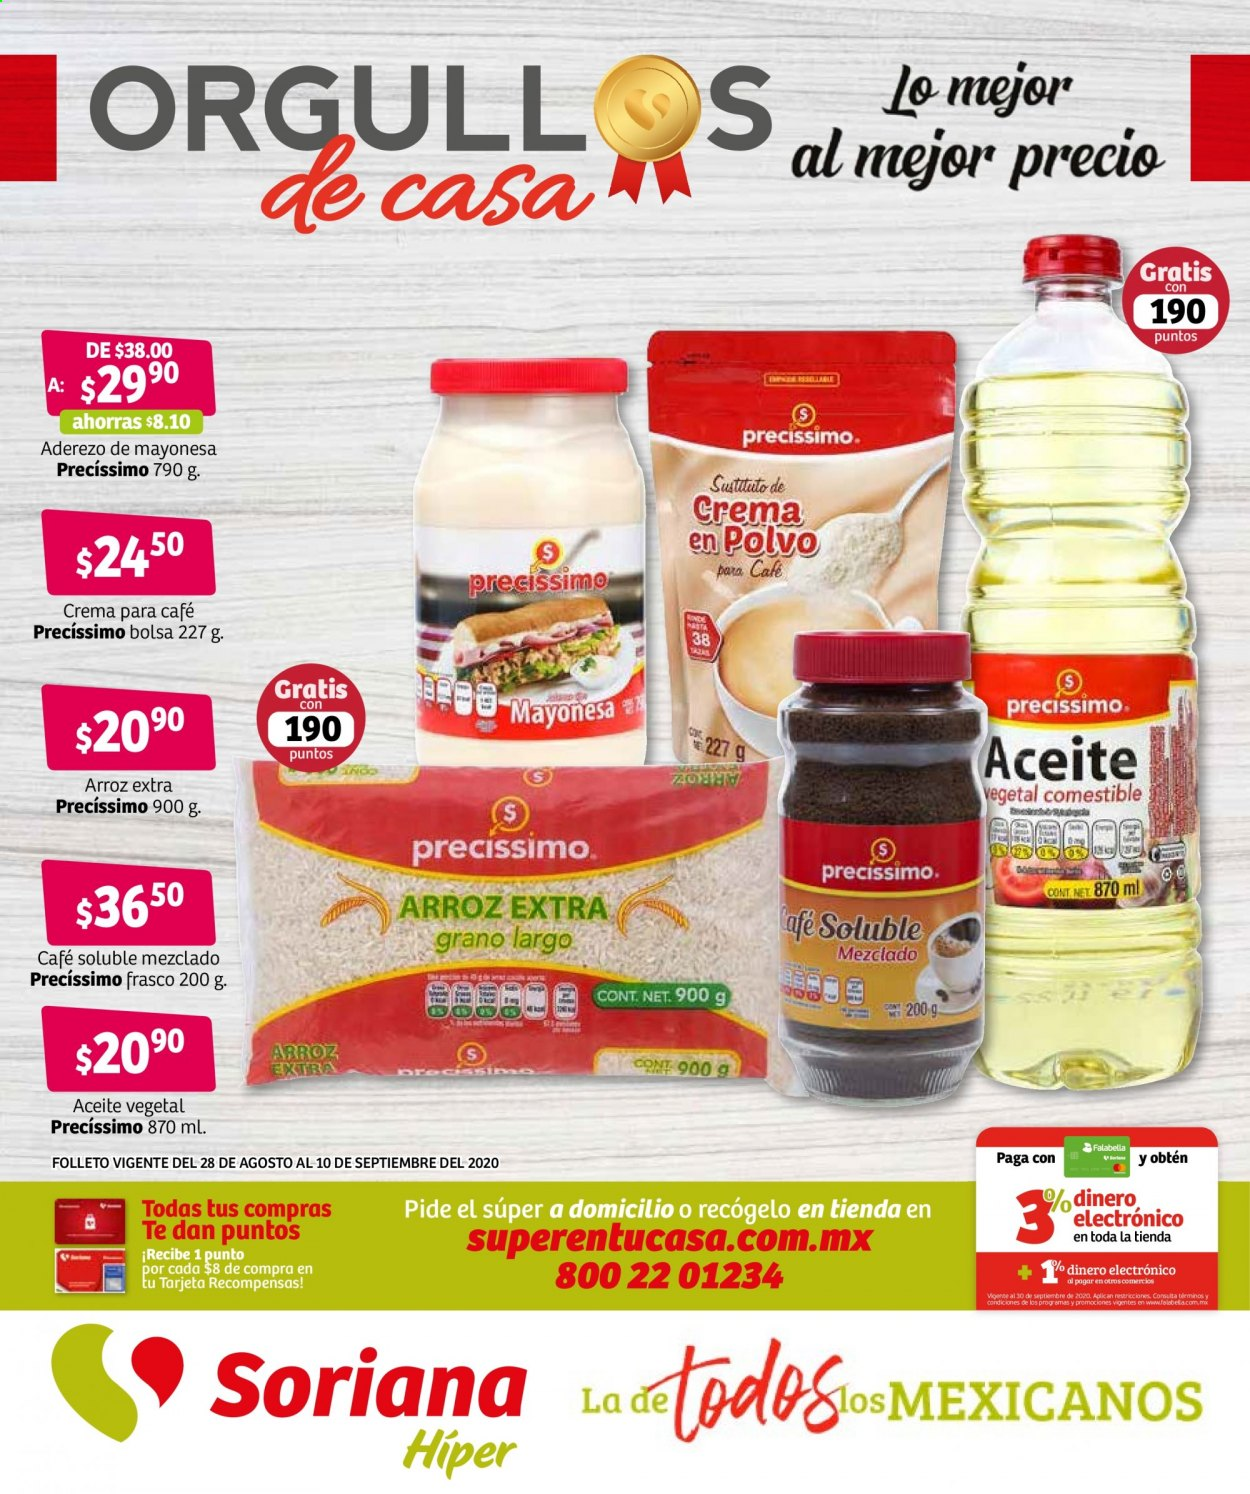 Folleto actual Soriana - 28.8.2020 - 10.9.2020 - Ventas - arroz, mayonesa, café, aceite vegetal. Página 1.